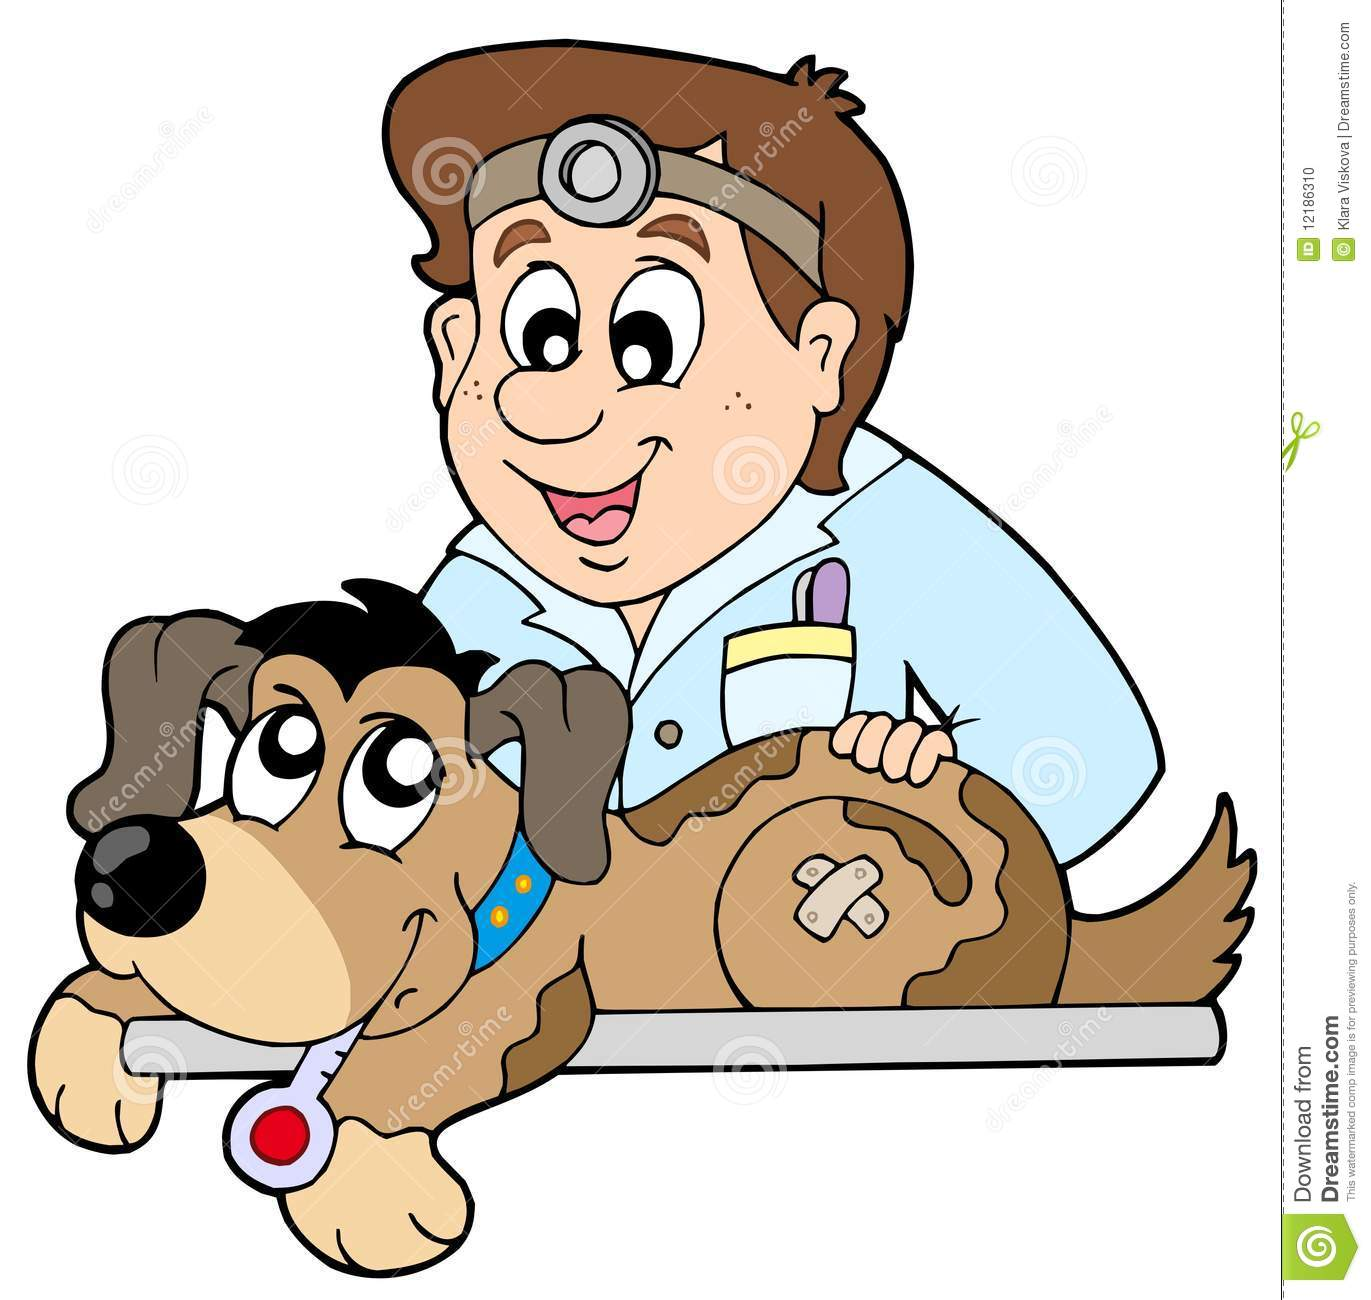 Veterinarian Stock Illustrations.